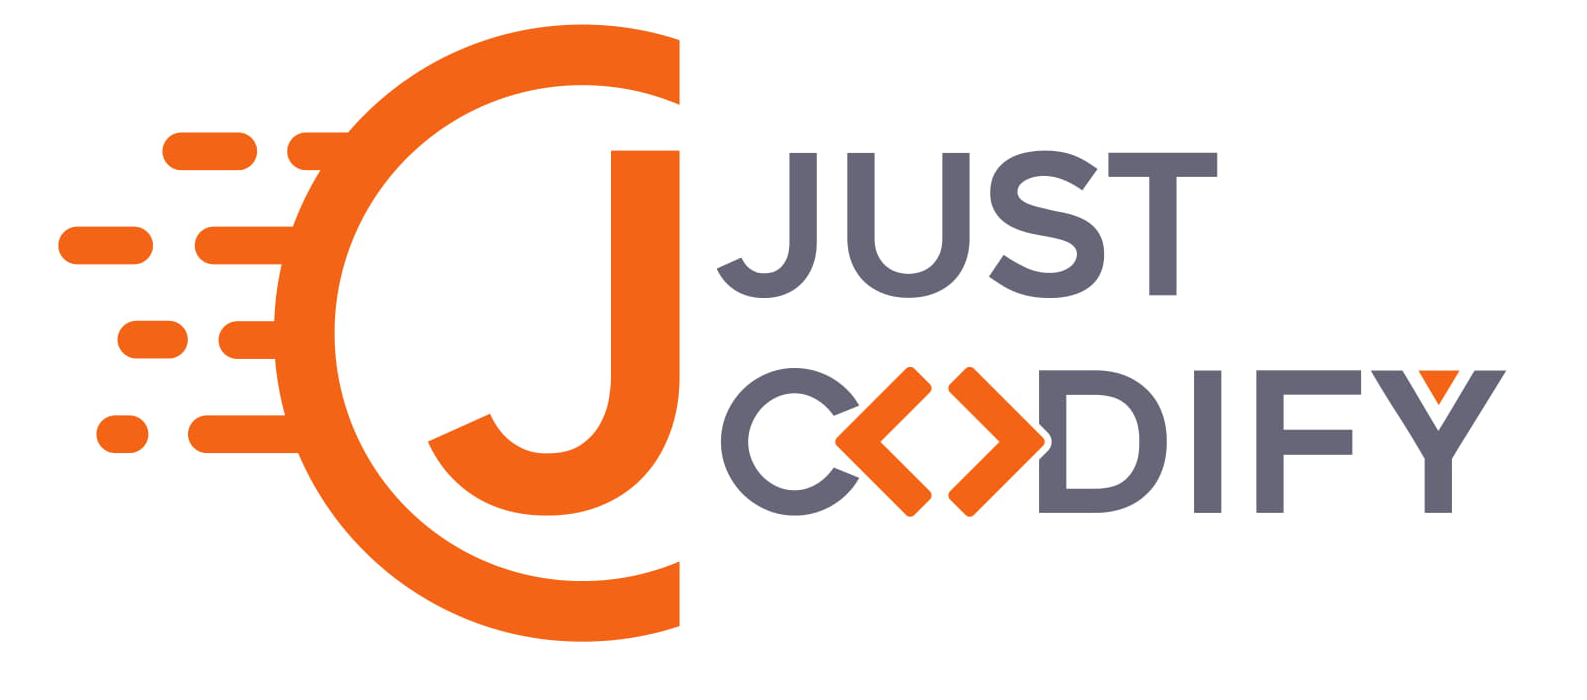 Just Codify : .NET, C#, PHP, My SQL, Cloud, Microsoft Azure, SQL, Software, Web Sites, Web API, Odoo, Open ERP, Python, CSS, Javascript, Mobile Apps, IONIC, NodeJS, AWS, Alexa App Development